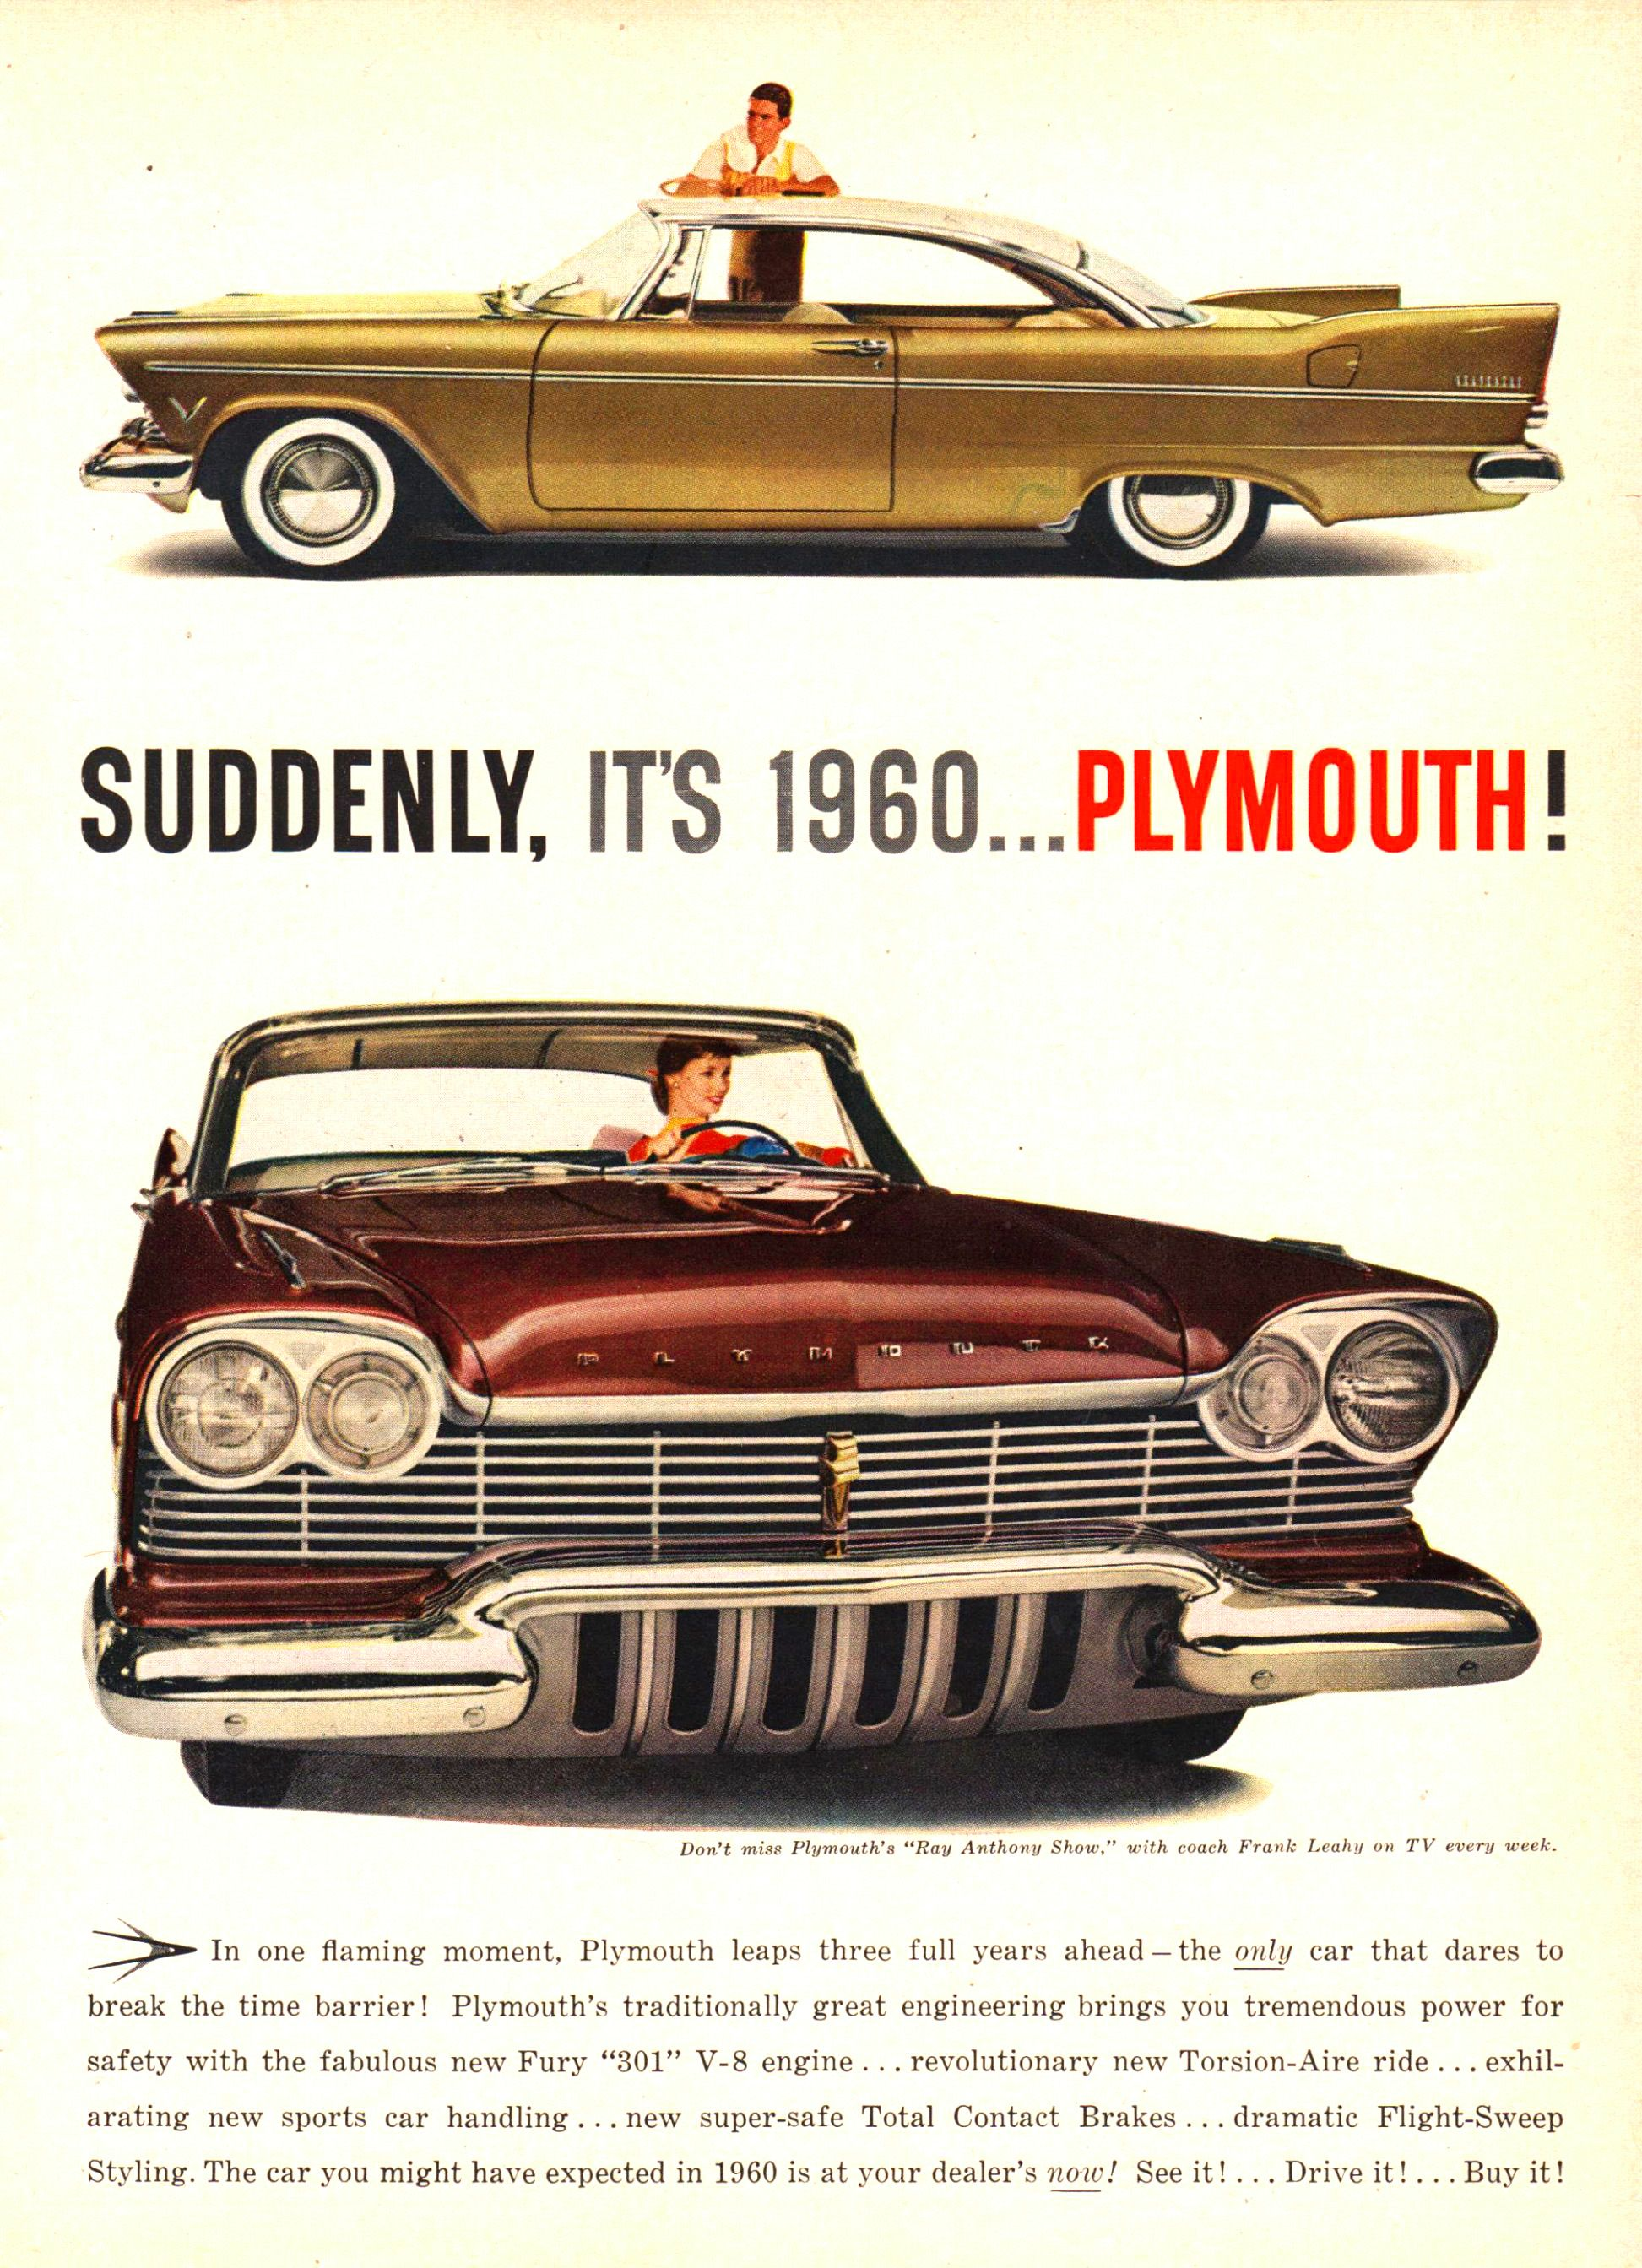 Plymouth !